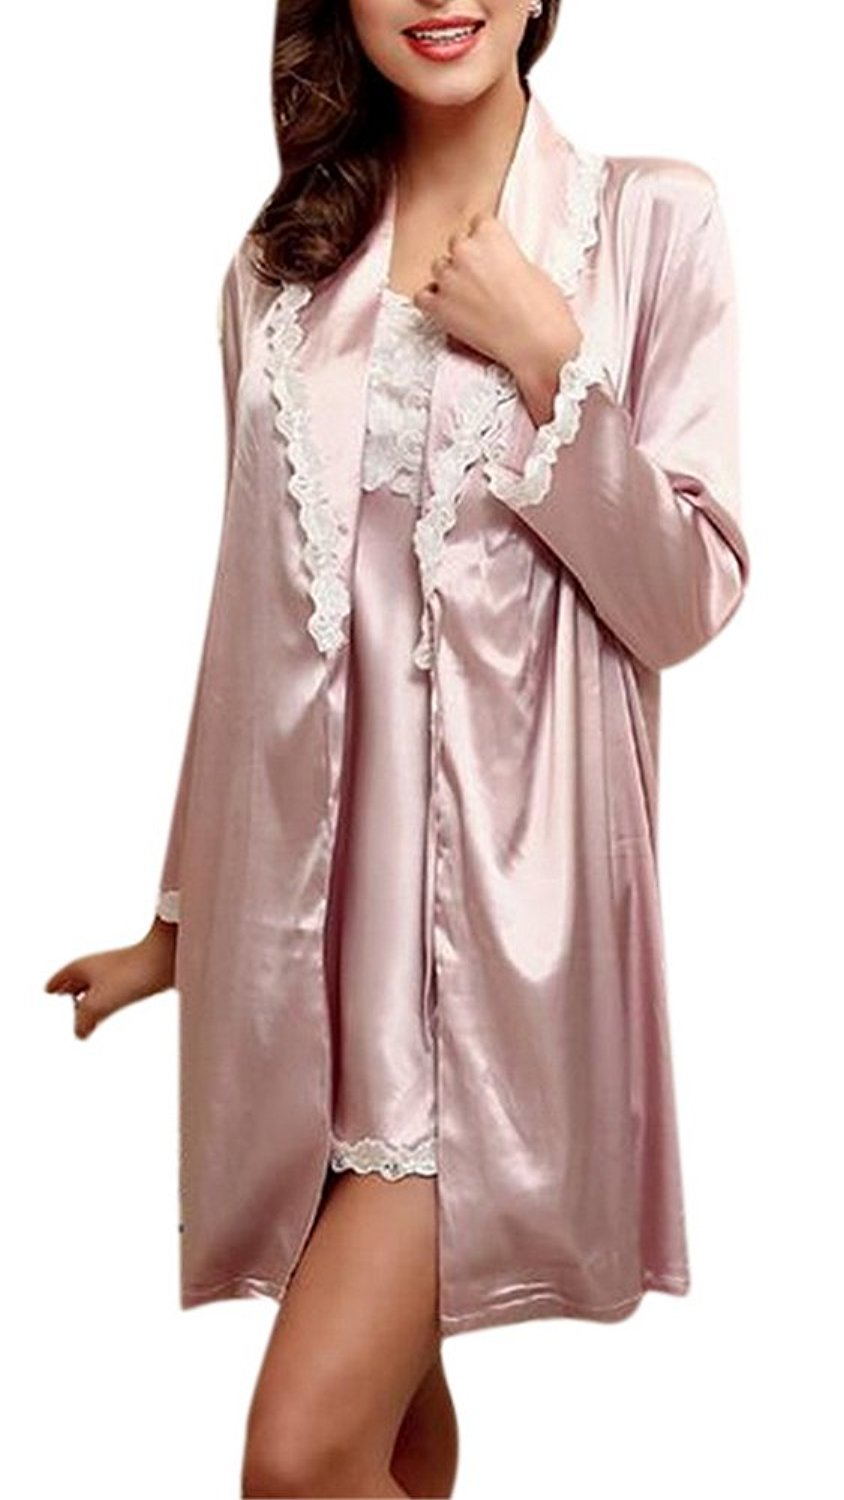 a437b617d6 Get Quotations · Youtobin Women s Long Sleeve Satin Pajama Set 2 Piece Robe  and Nightgown Set